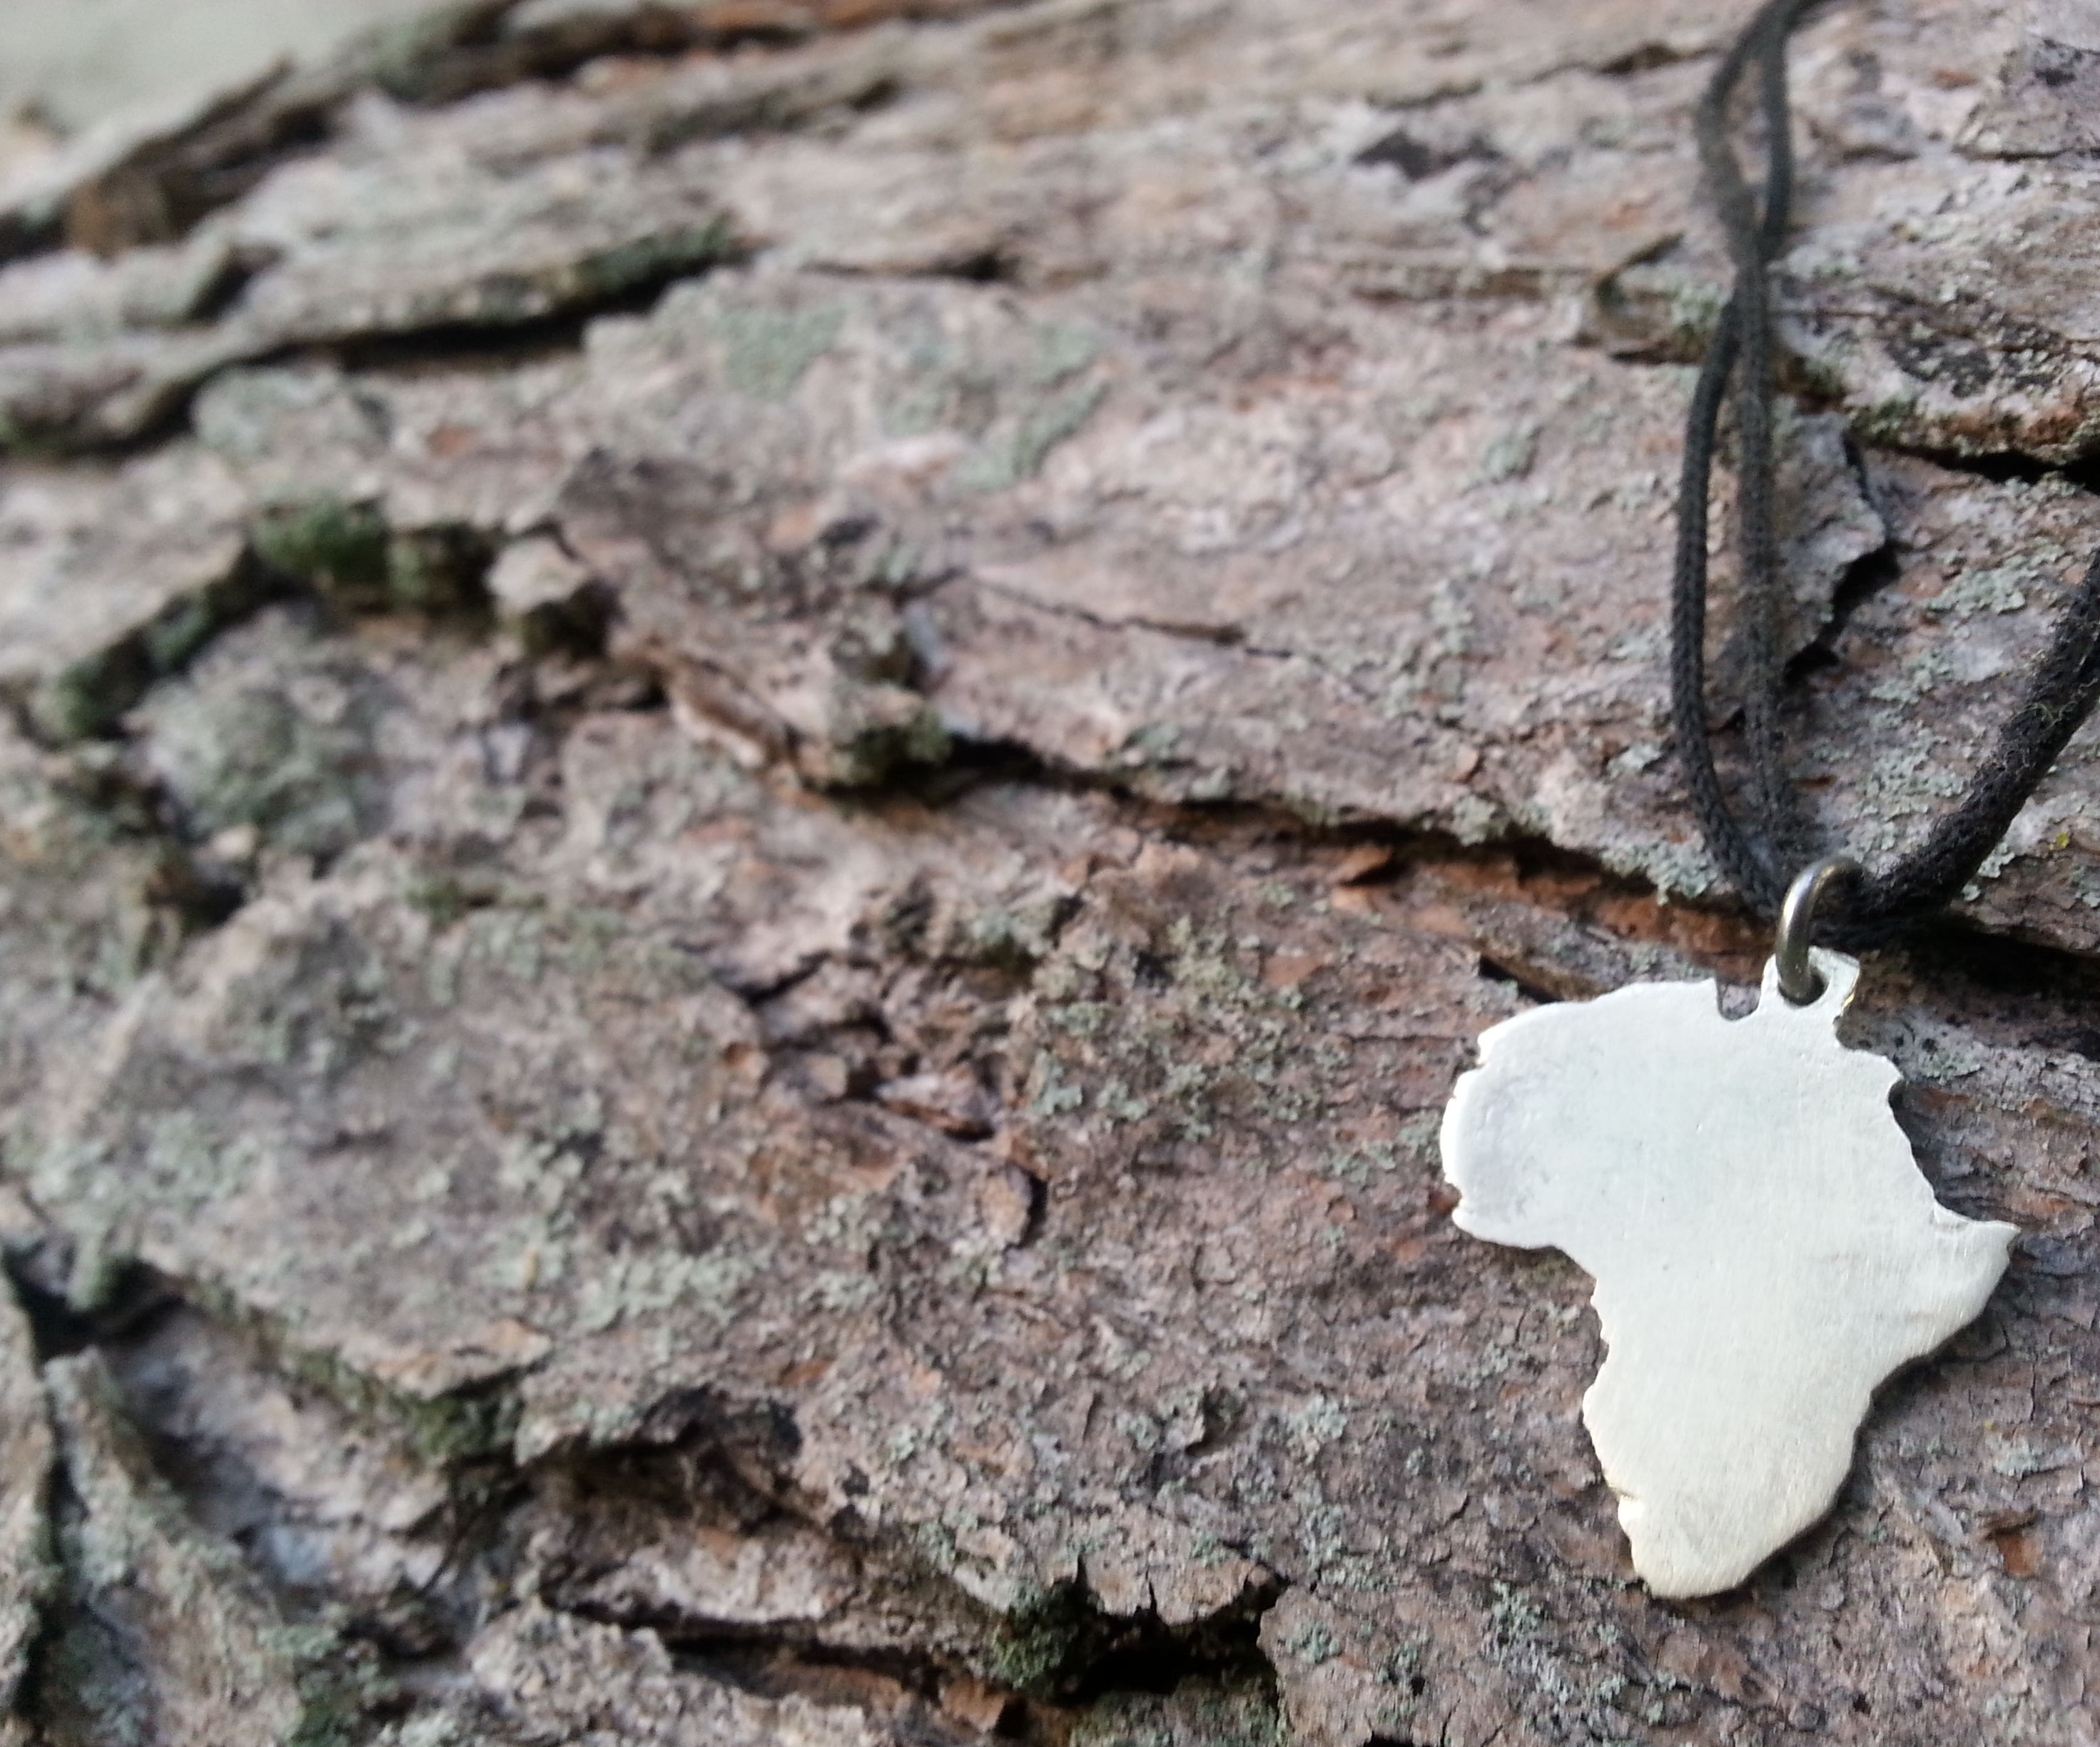 How to Make a Silver Africa Pendant From a Quarter